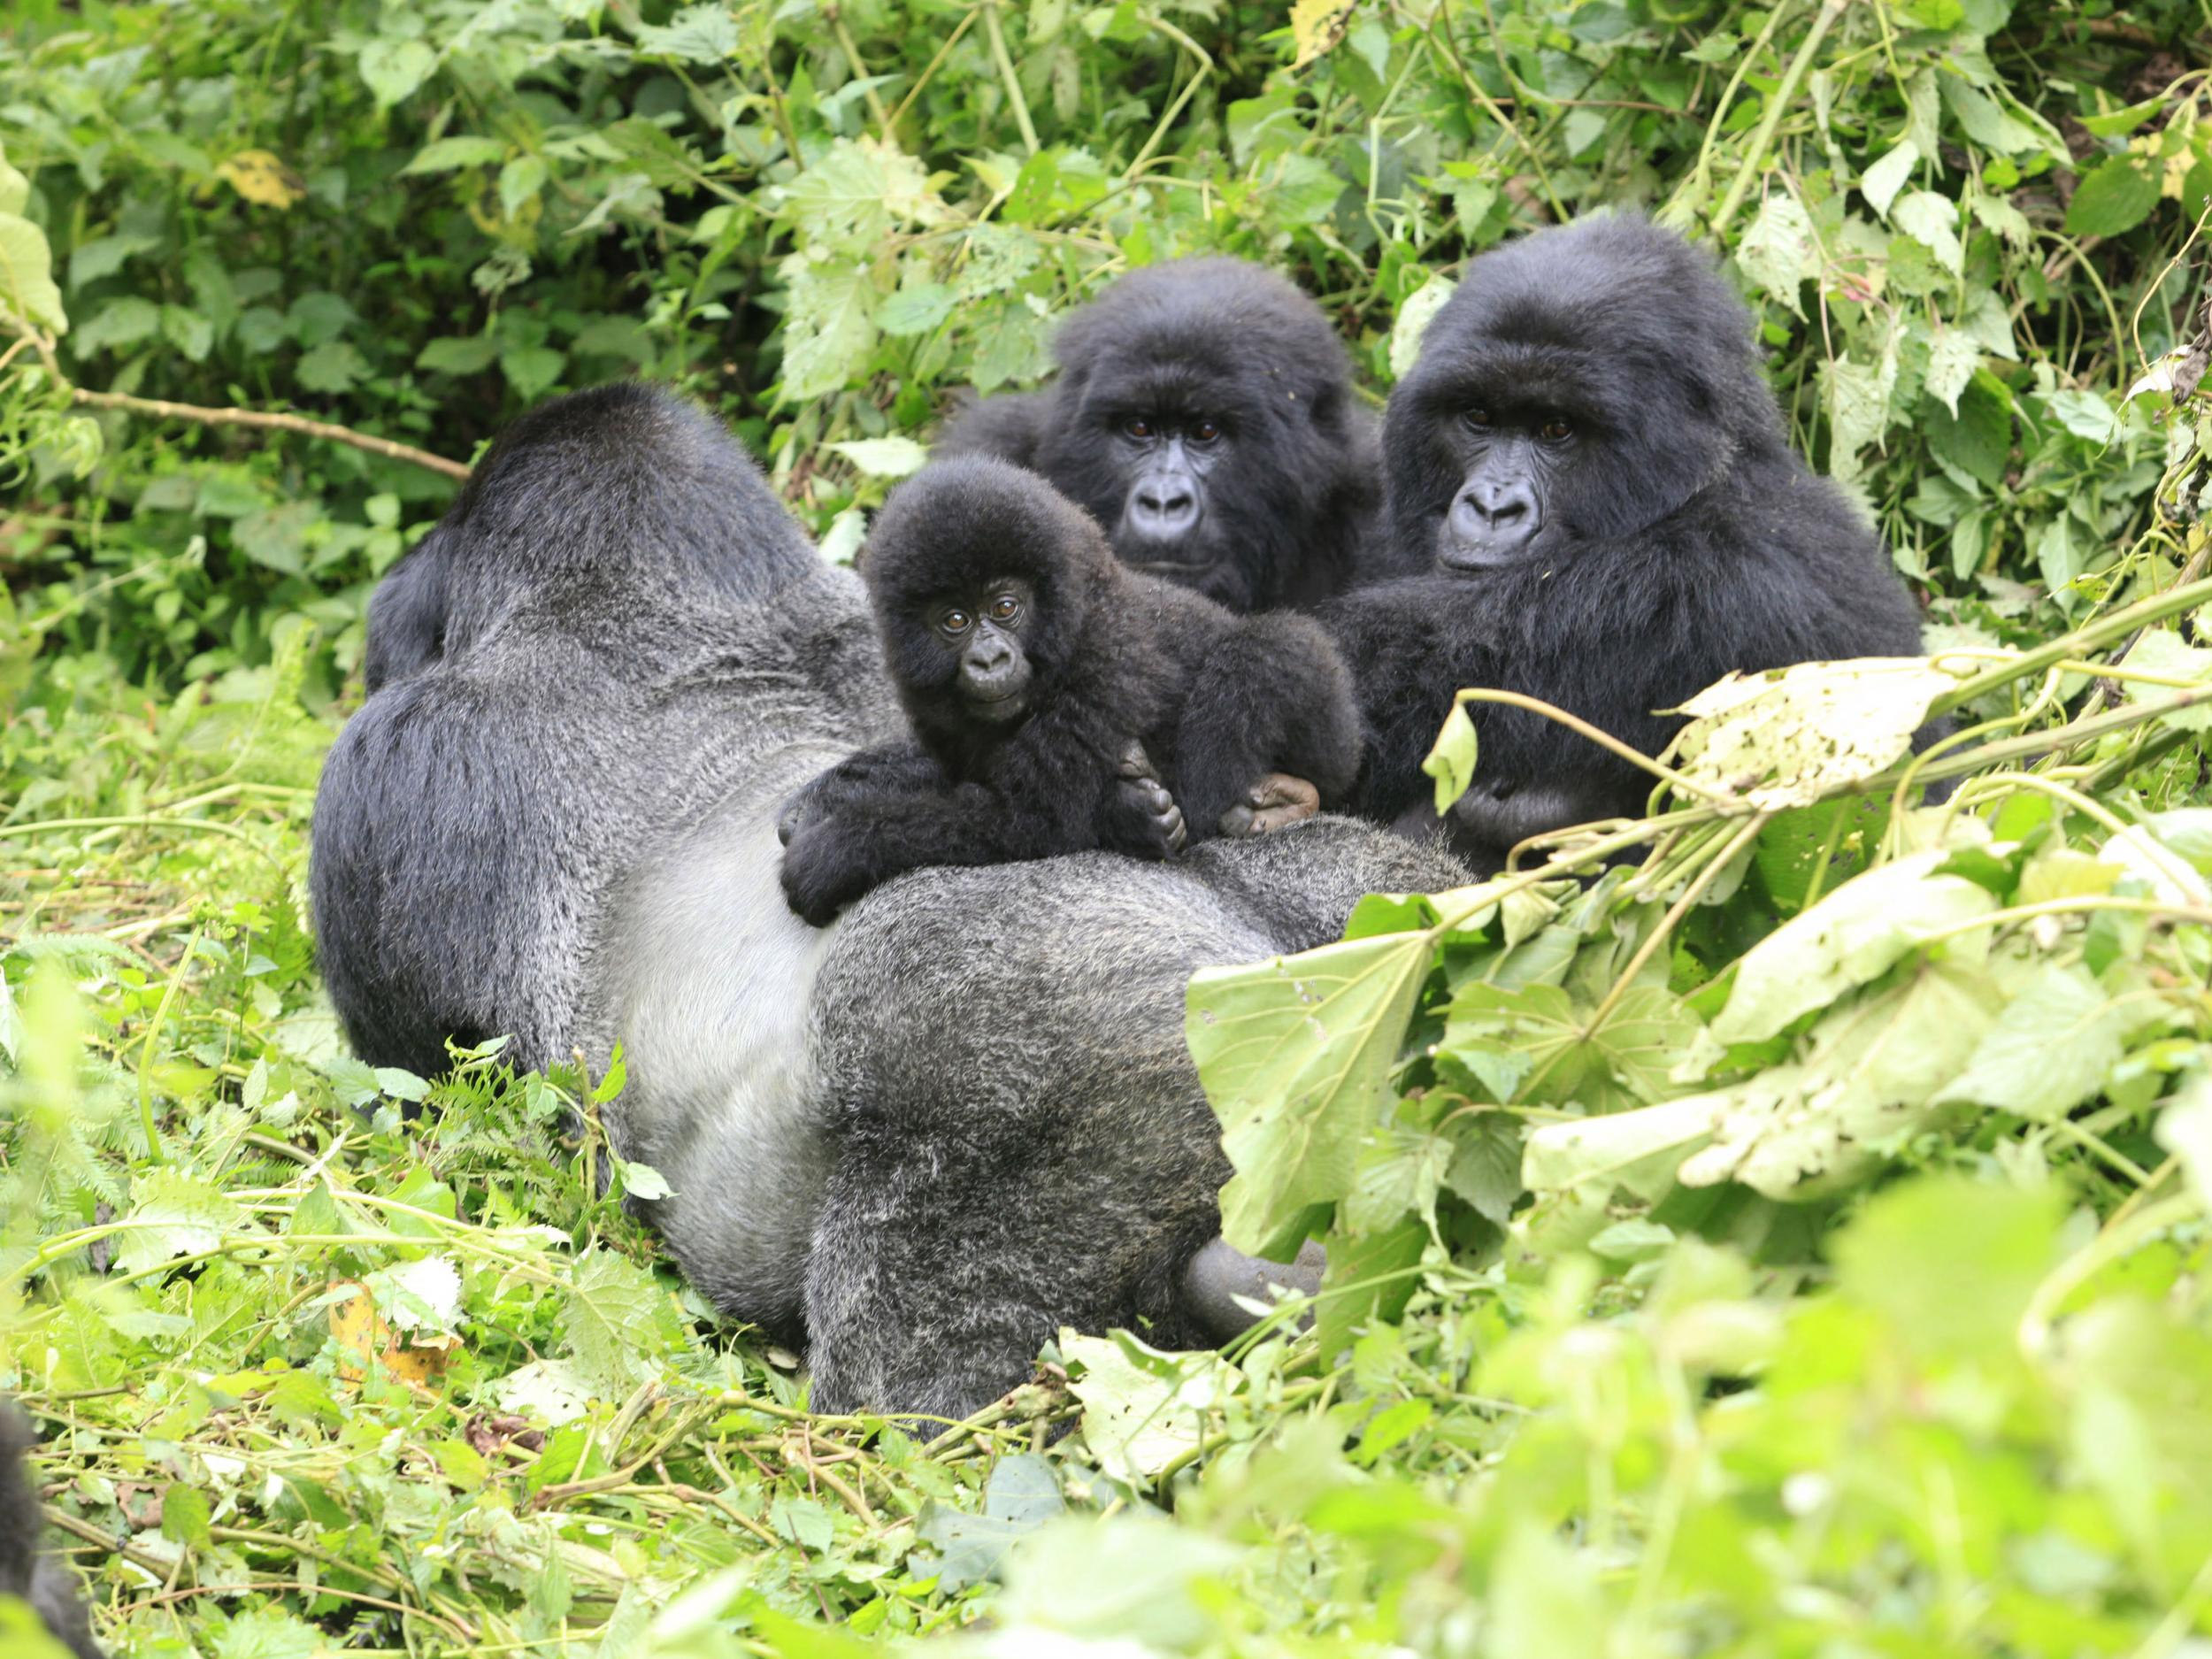 DR Congo approves oil drilling in Unesco World Heritage Sites that home endangered gorillas